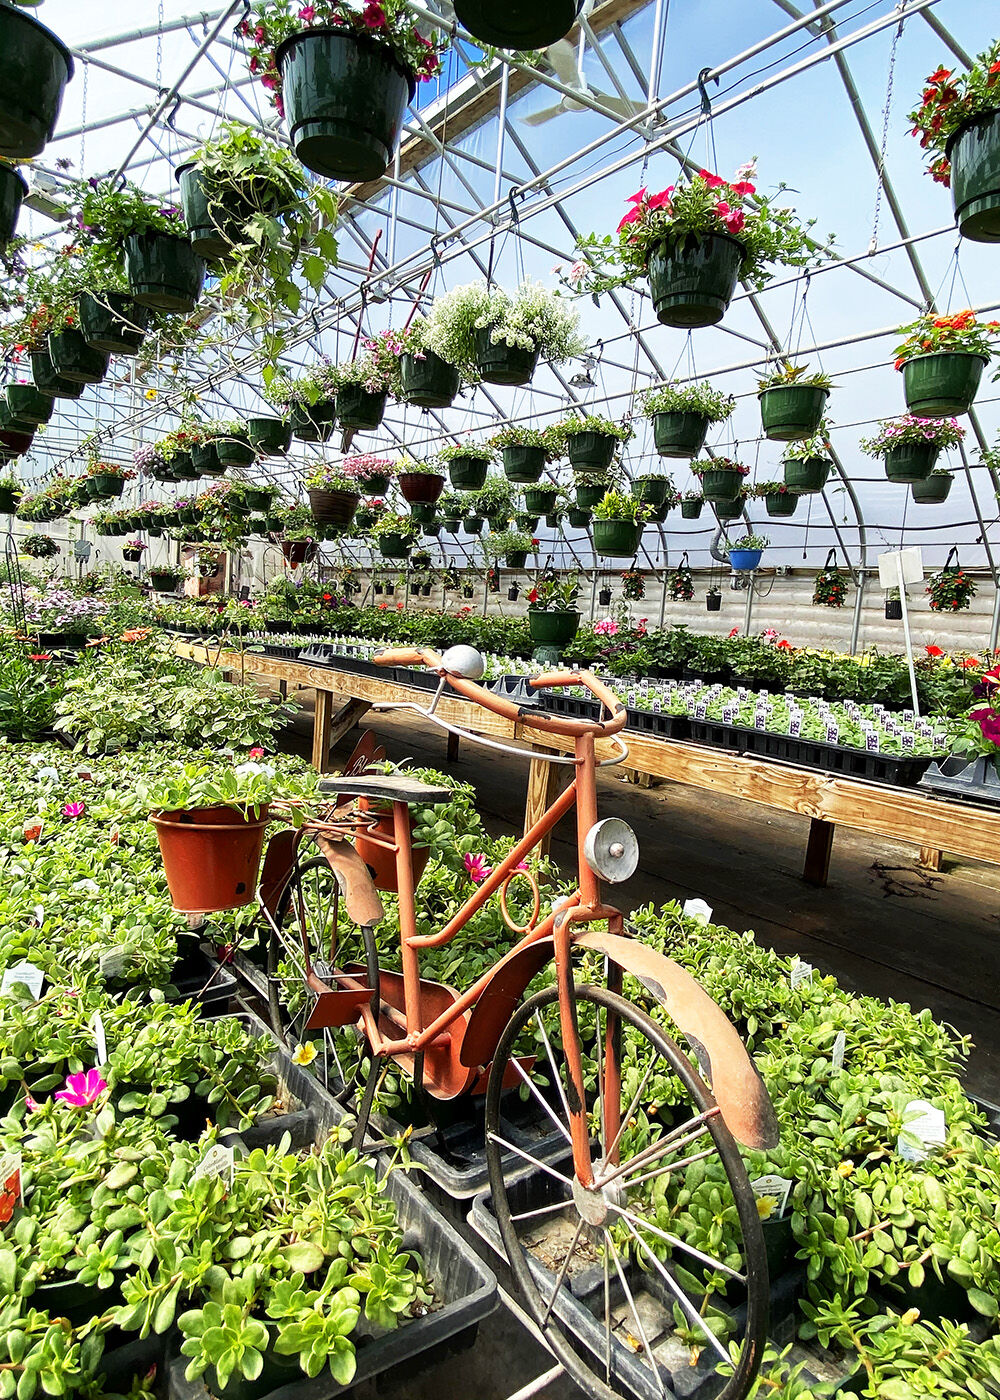 Business is blooming at local greenhouses